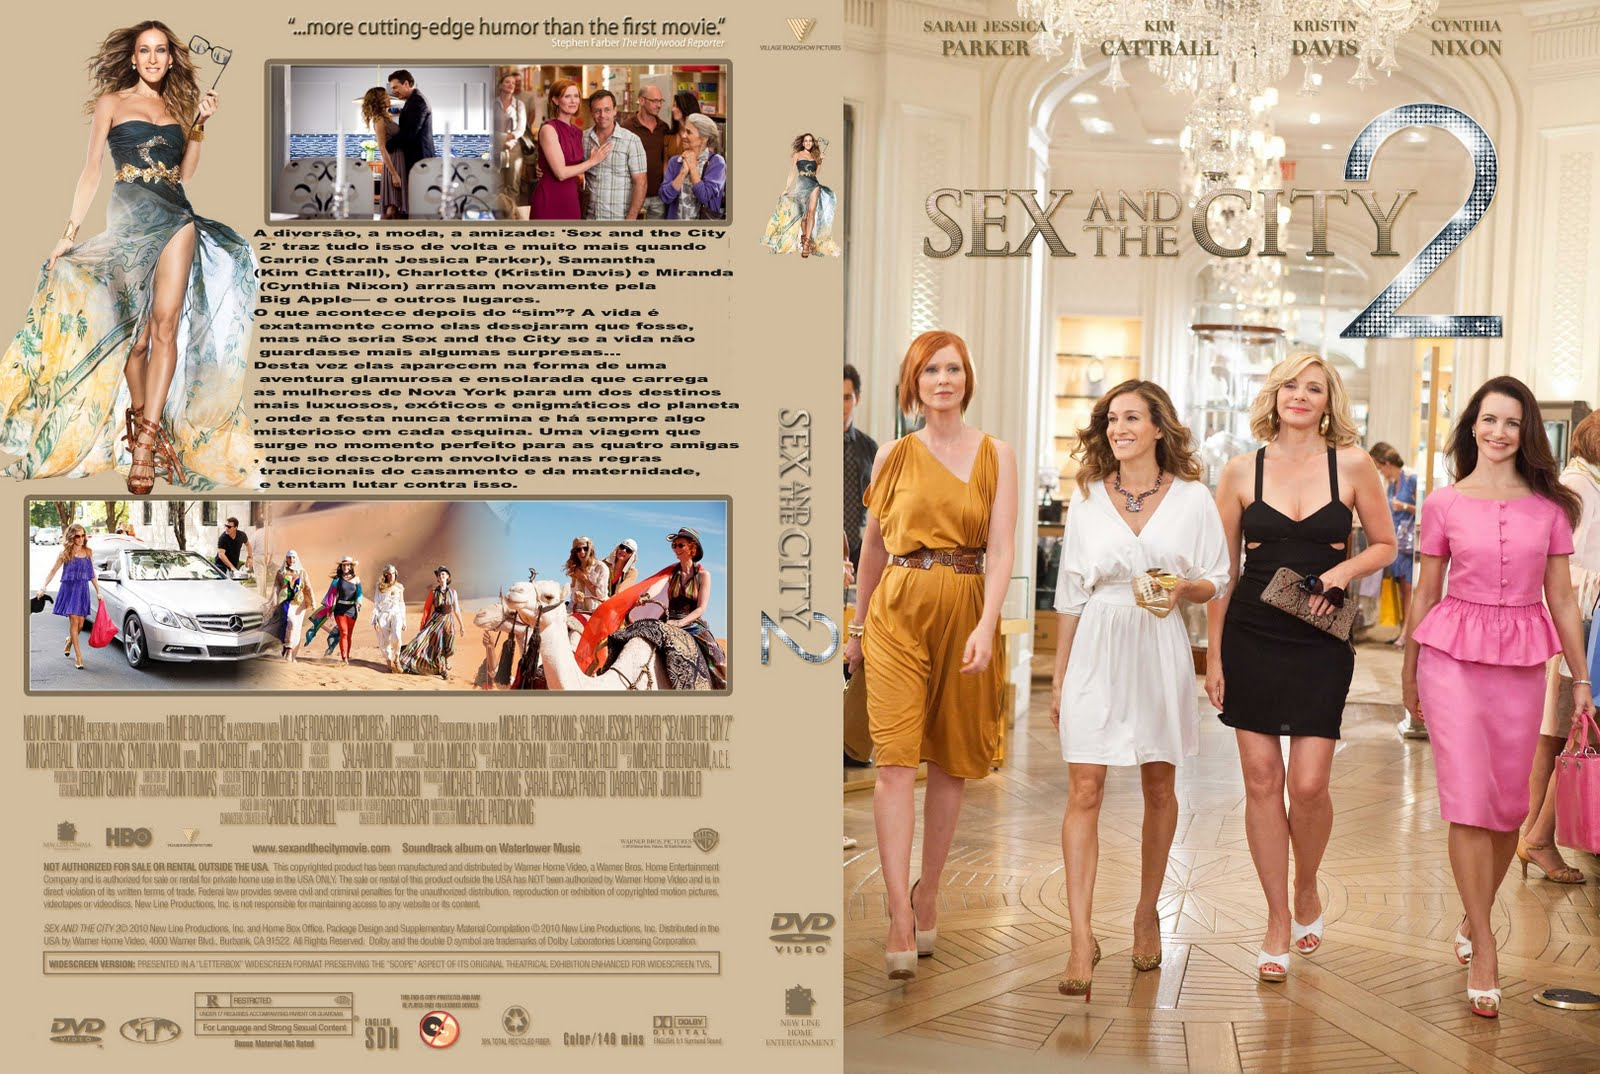 sex and the city 2 dreamfilm